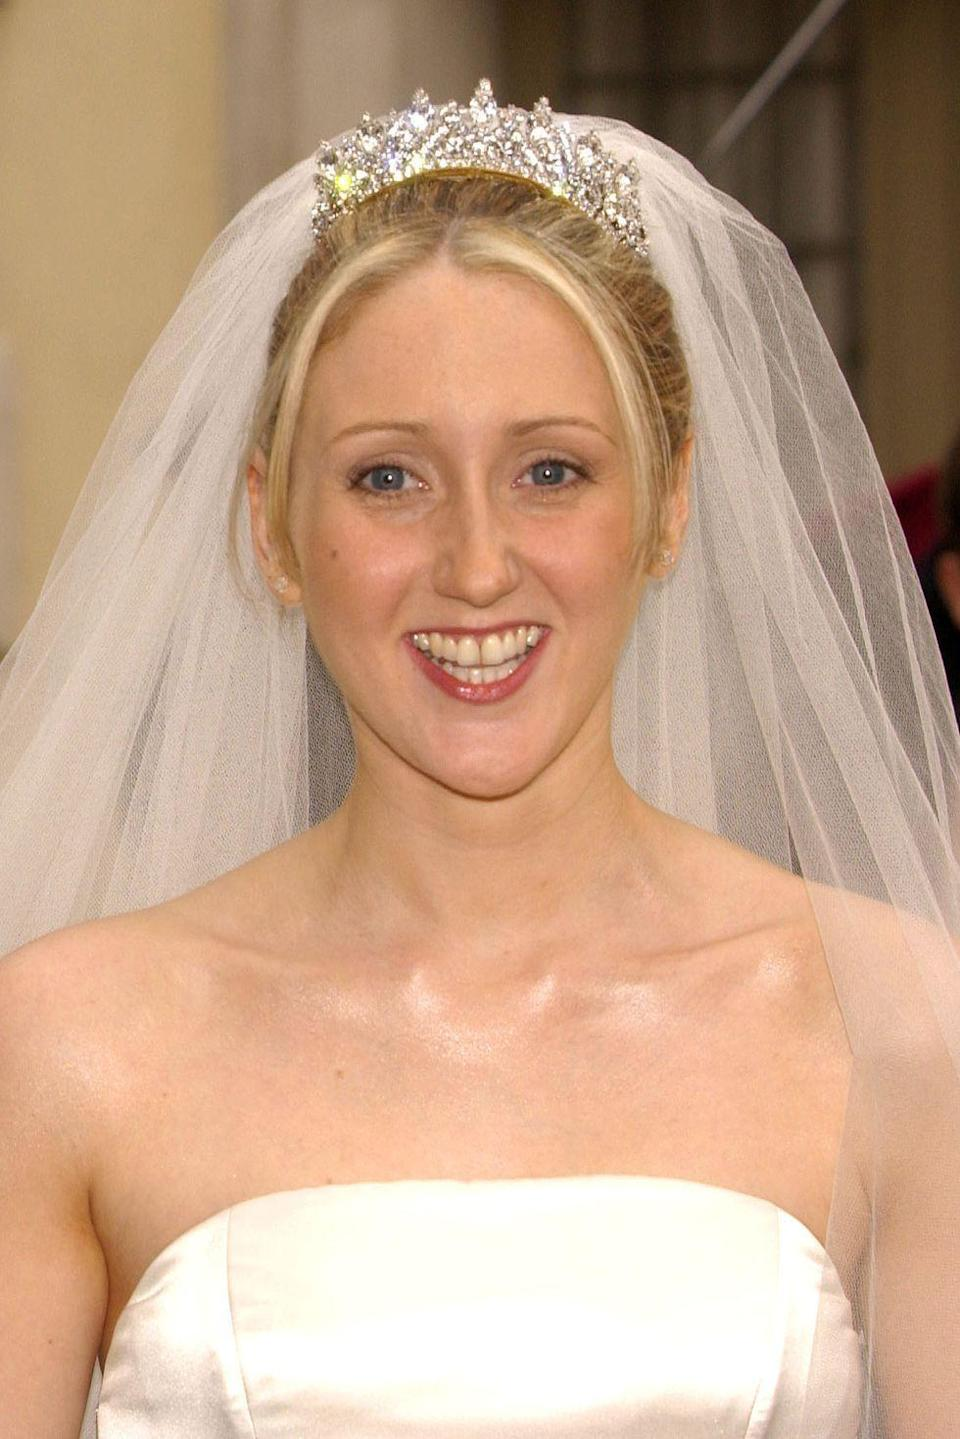 "<p><strong>Wedding date: </strong>June 22, 2002</p><p><strong>Wedding tiara: </strong>While little information about Claire Windsor's wedding jewelry is known to the public, the all-diamond diadem <a href=""http://www.thecourtjeweller.com/2014/05/queen-marys-honeysuckle-tiara.html"" rel=""nofollow noopener"" target=""_blank"" data-ylk=""slk:is believed to be one"" class=""link rapid-noclick-resp"">is believed to be one</a> of the six tiaras owned by the Duke and Duchess of Gloucester, Claire's in-laws. <br></p>"